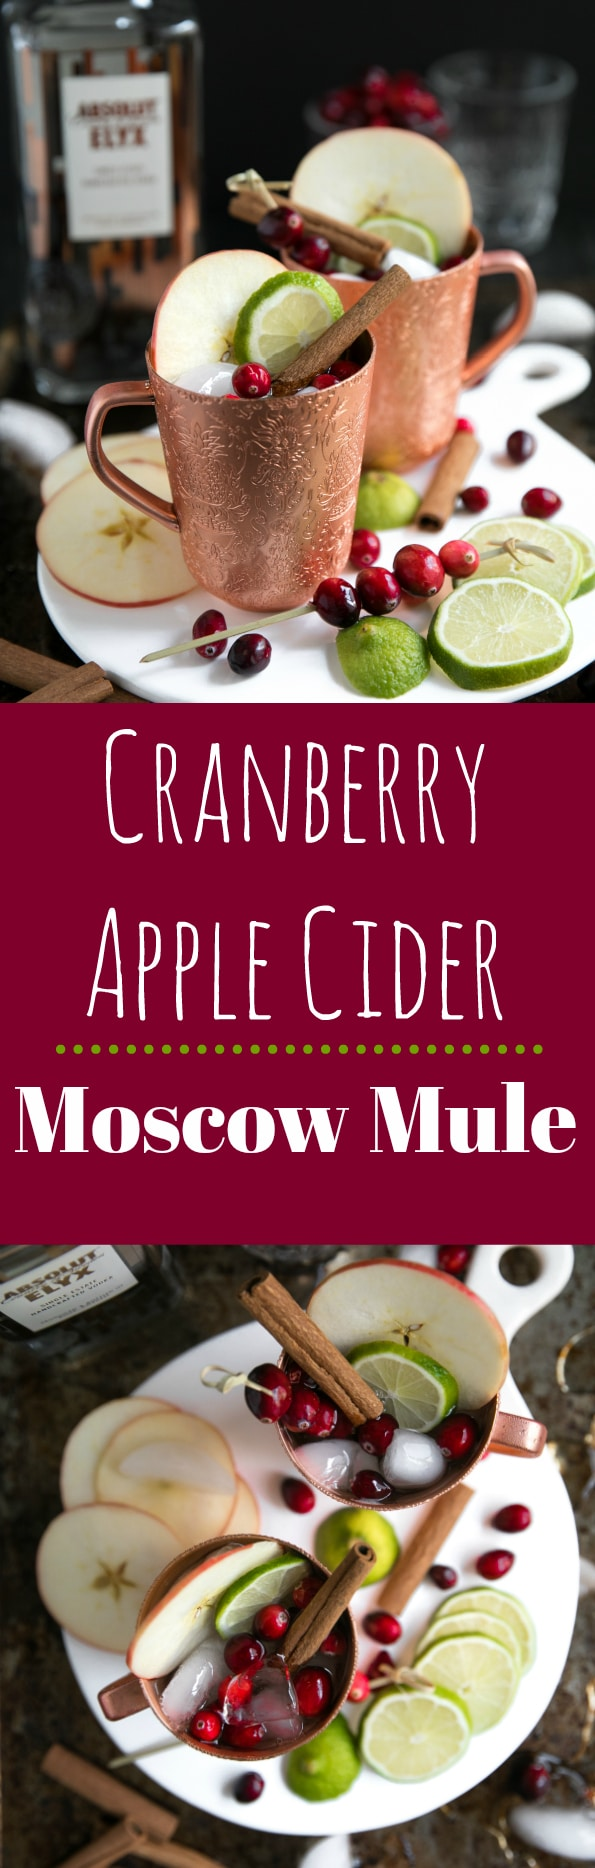 Cranberry Apple Cider Moscow Mule.  Delicious any time of year, this Cranberry Apple Cider Moscow Mule is light, crisp and refreshing; perfect for a night in with friends or a large family gathering.  #vodka #cranberries #cinnamon